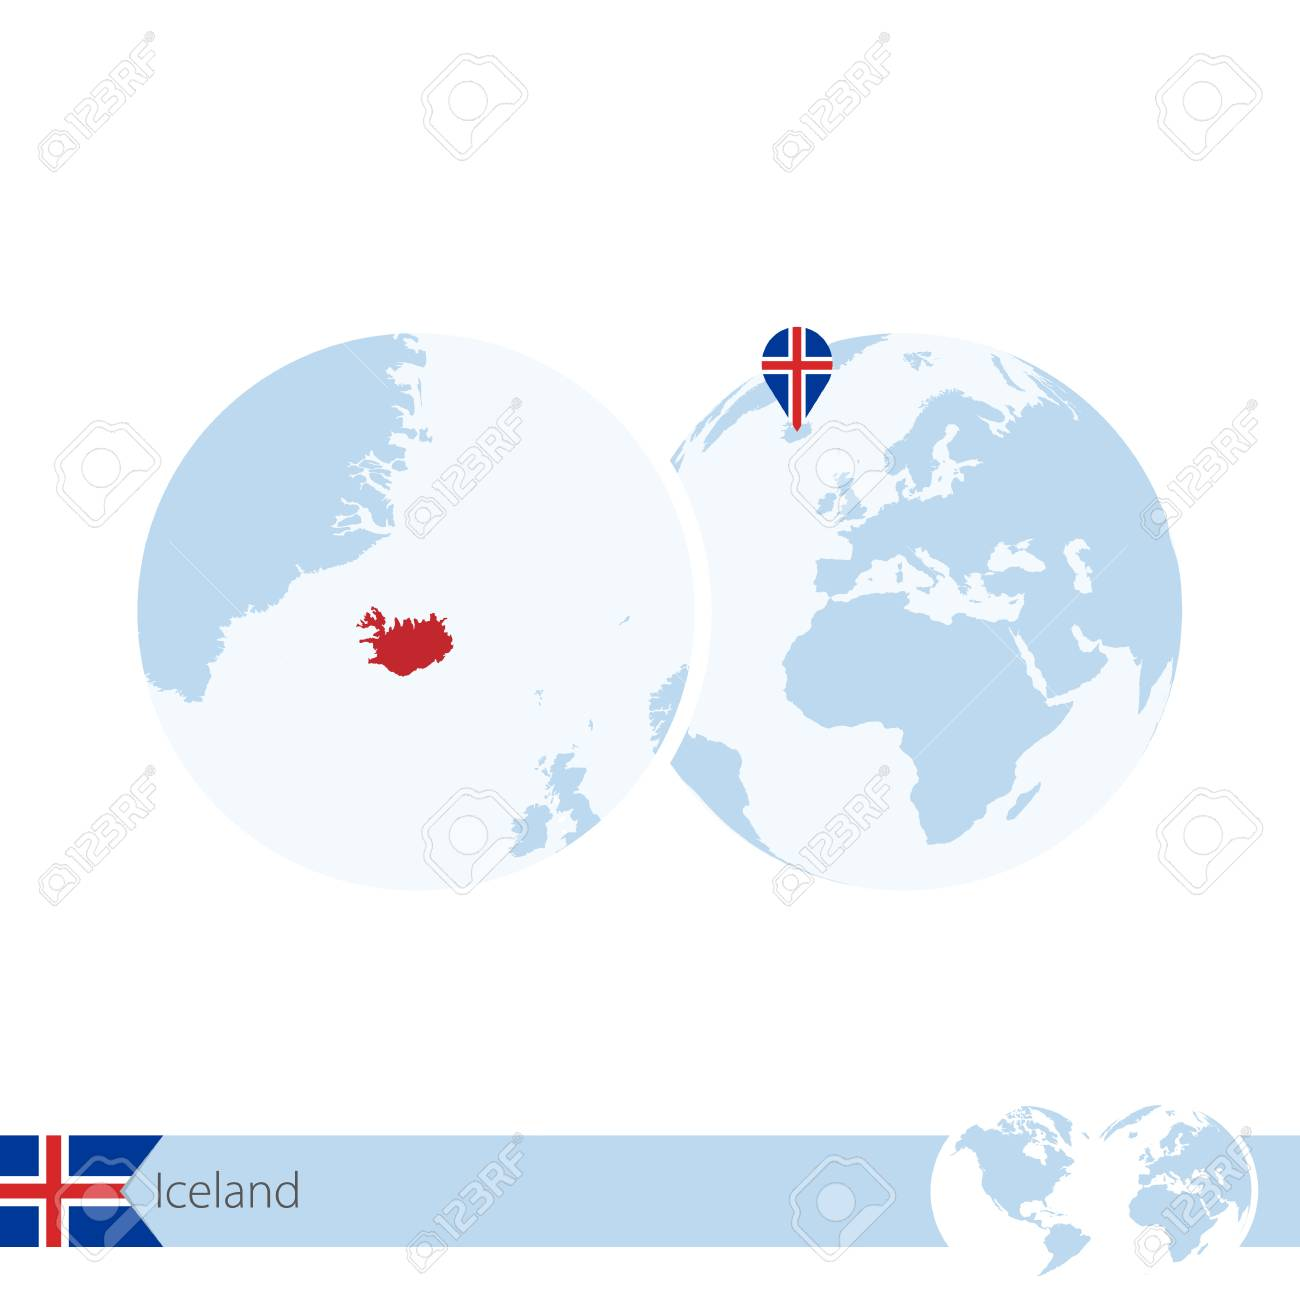 Iceland on world globe with flag and regional map of iceland iceland on world globe with flag and regional map of iceland illustration stock vector gumiabroncs